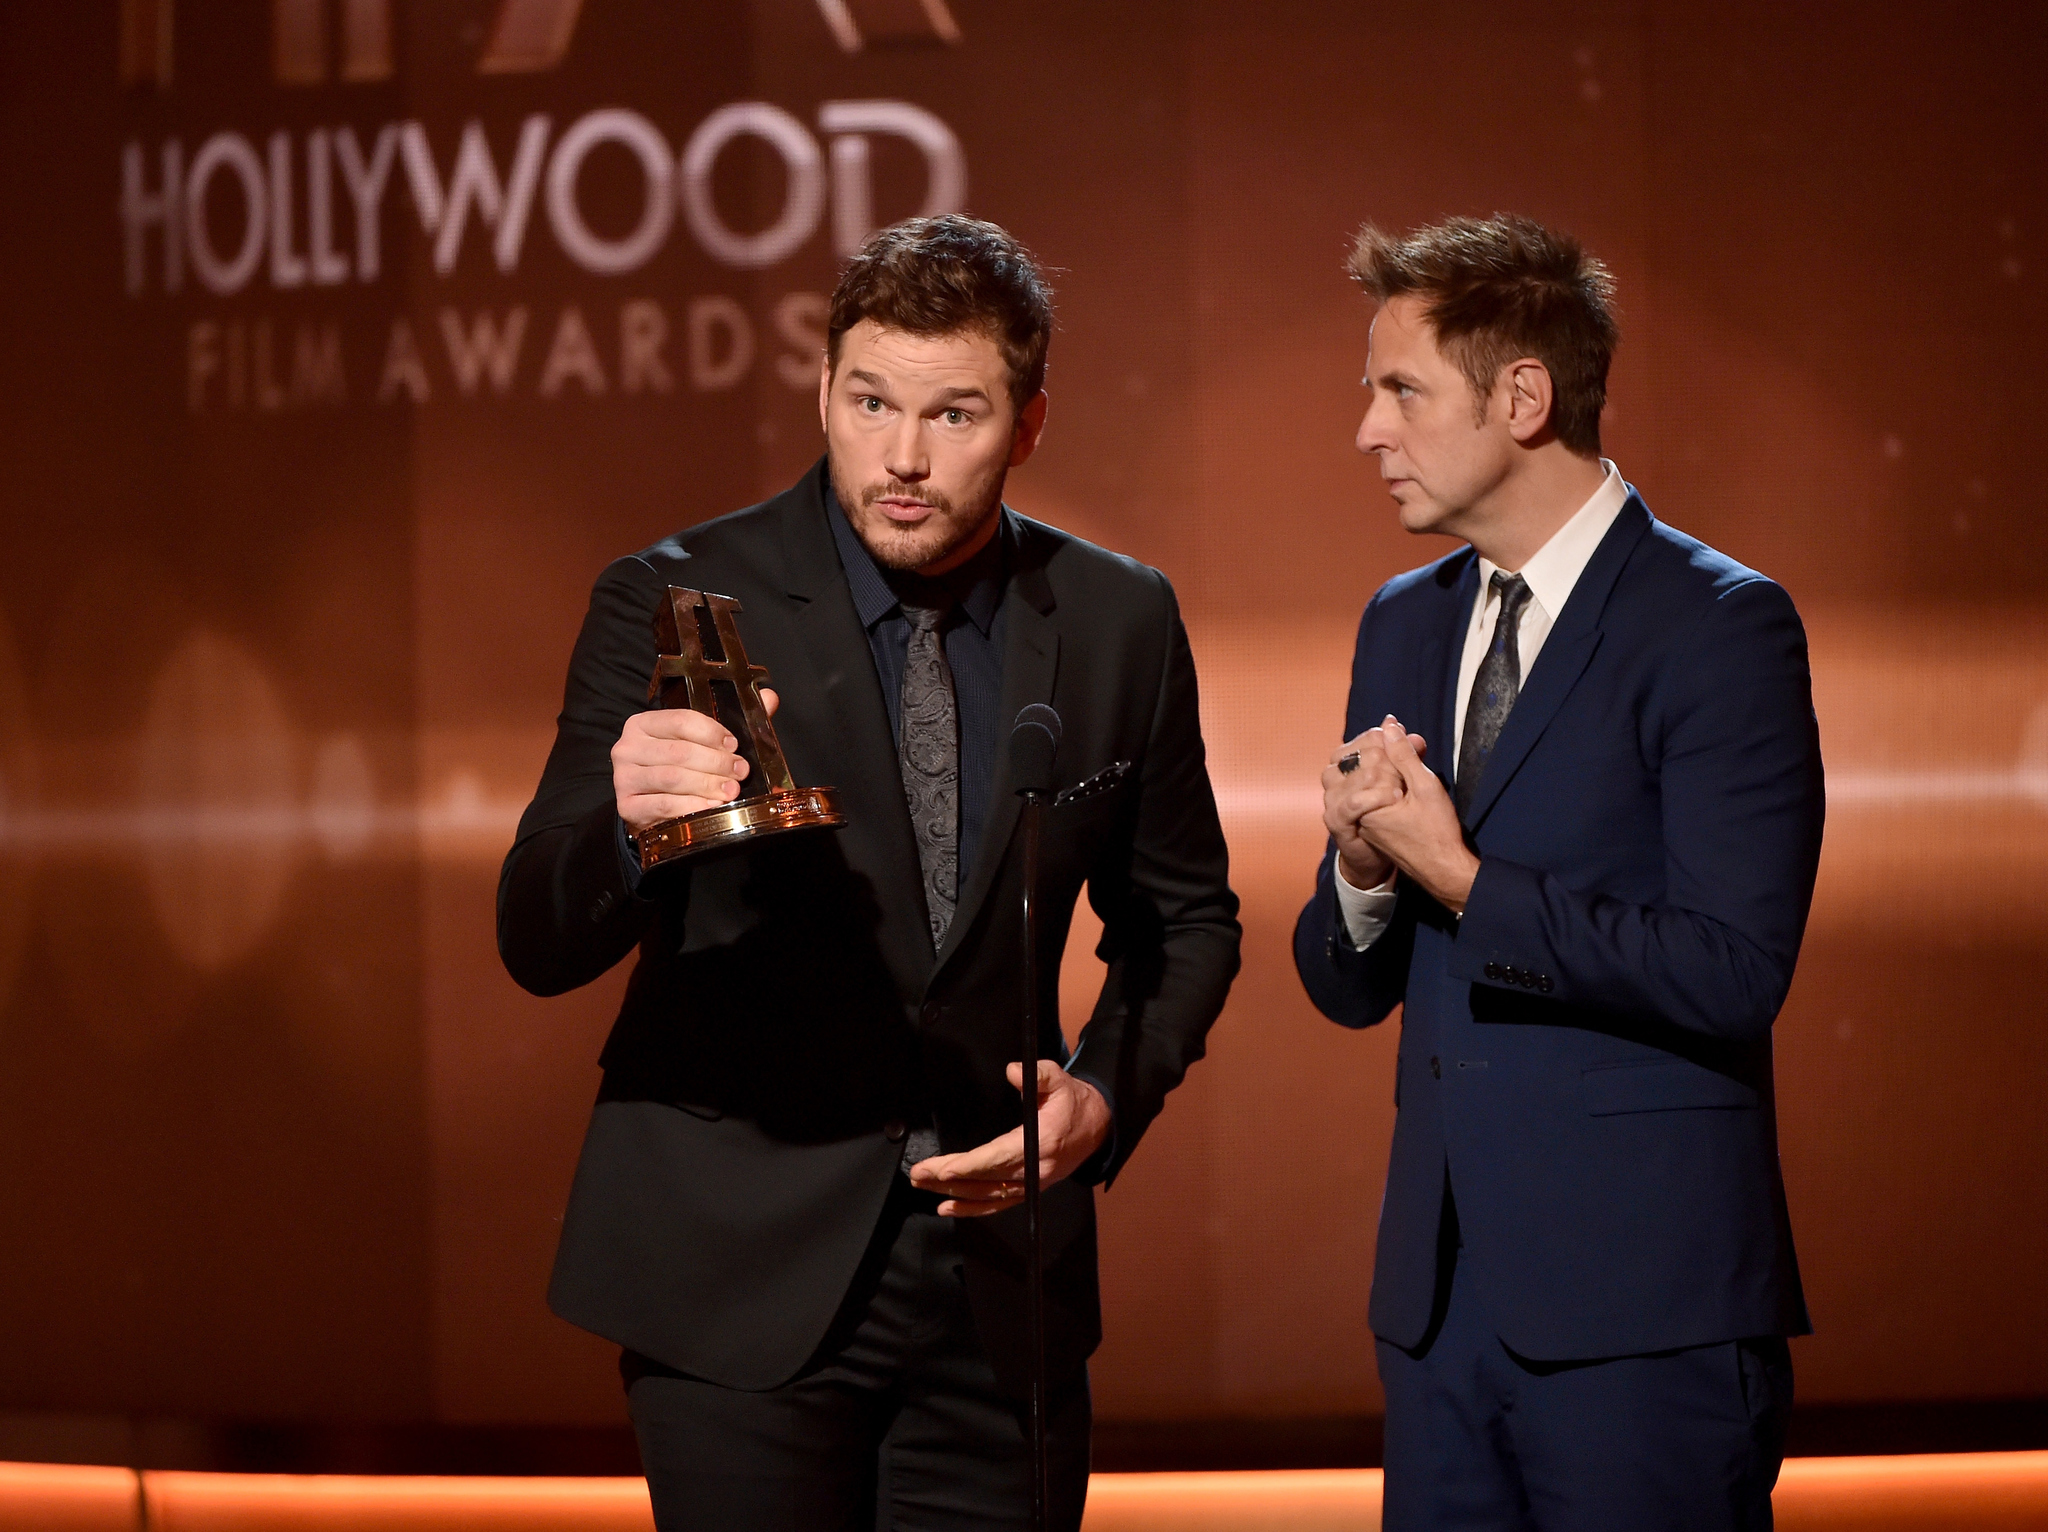 James Gunn and Chris Pratt at event of Hollywood Film Awards (2014) photo #489110